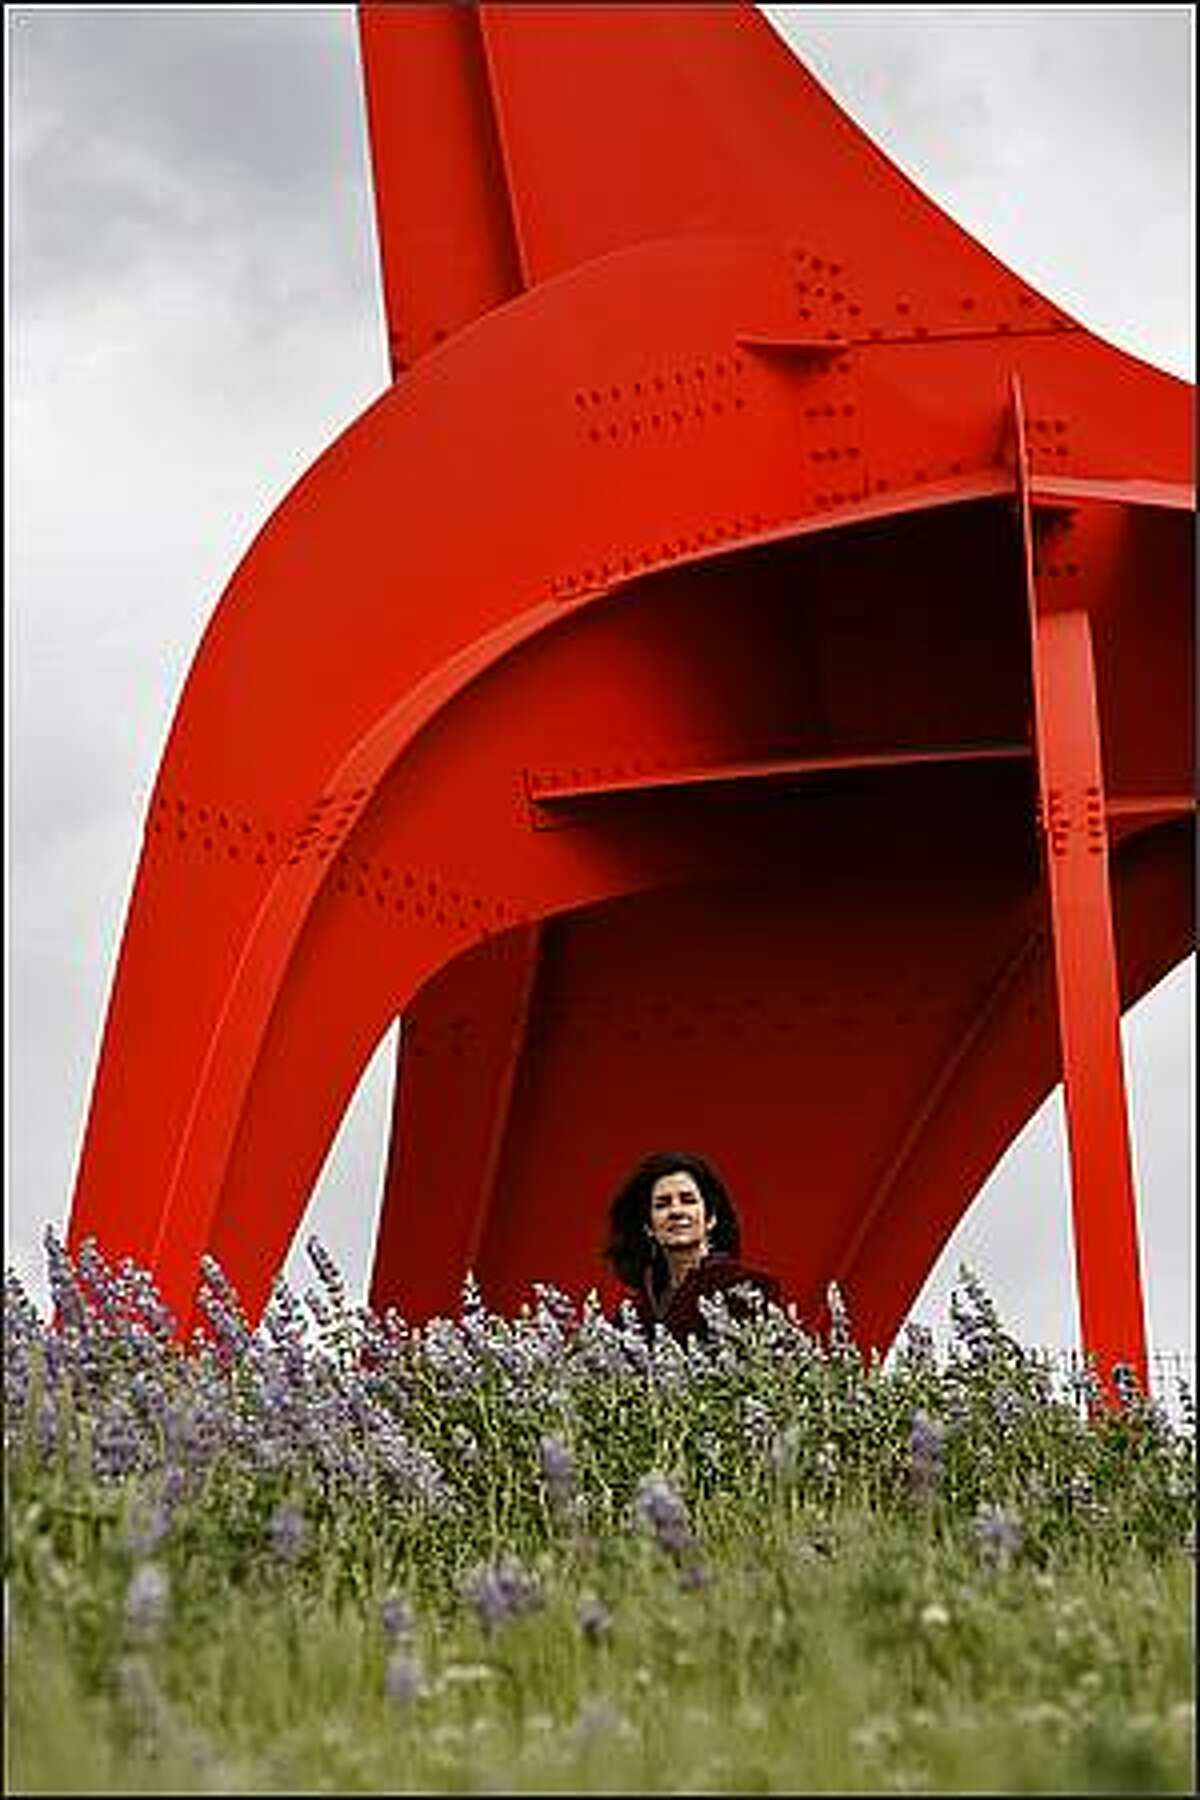 Children's author Blue Balliett shown in front of the Calder sculpture at the SAM Olympic Sculpture Park in Seattle. (Seattle Post-Intelligencer/Mike Urban)